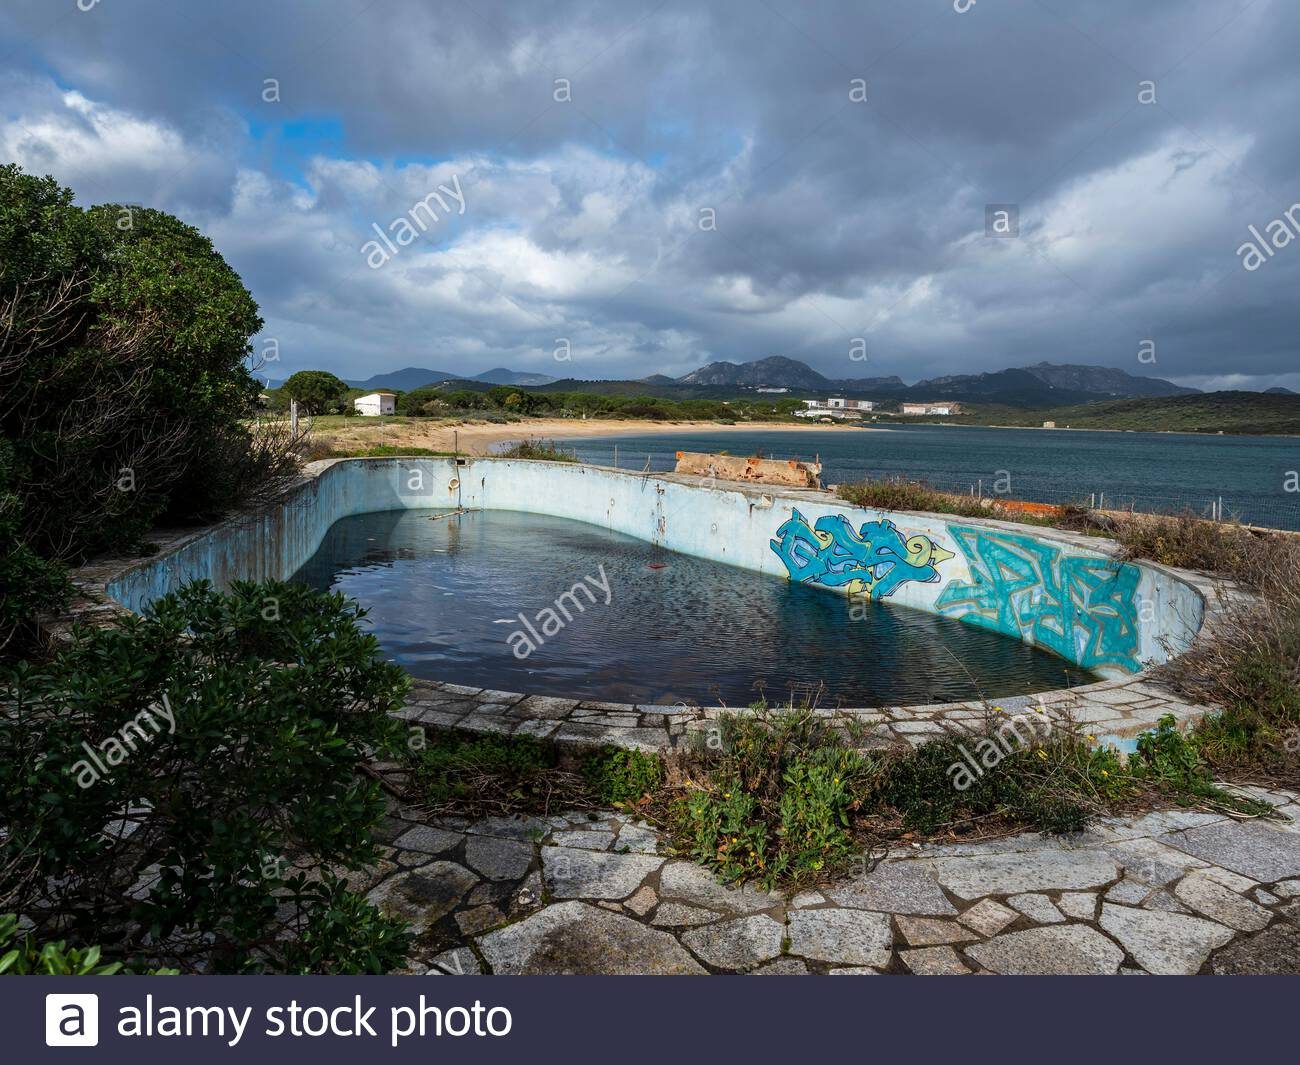 Waste Concrete Swimming Pool High Resolution Stock Photography And Images Alamy